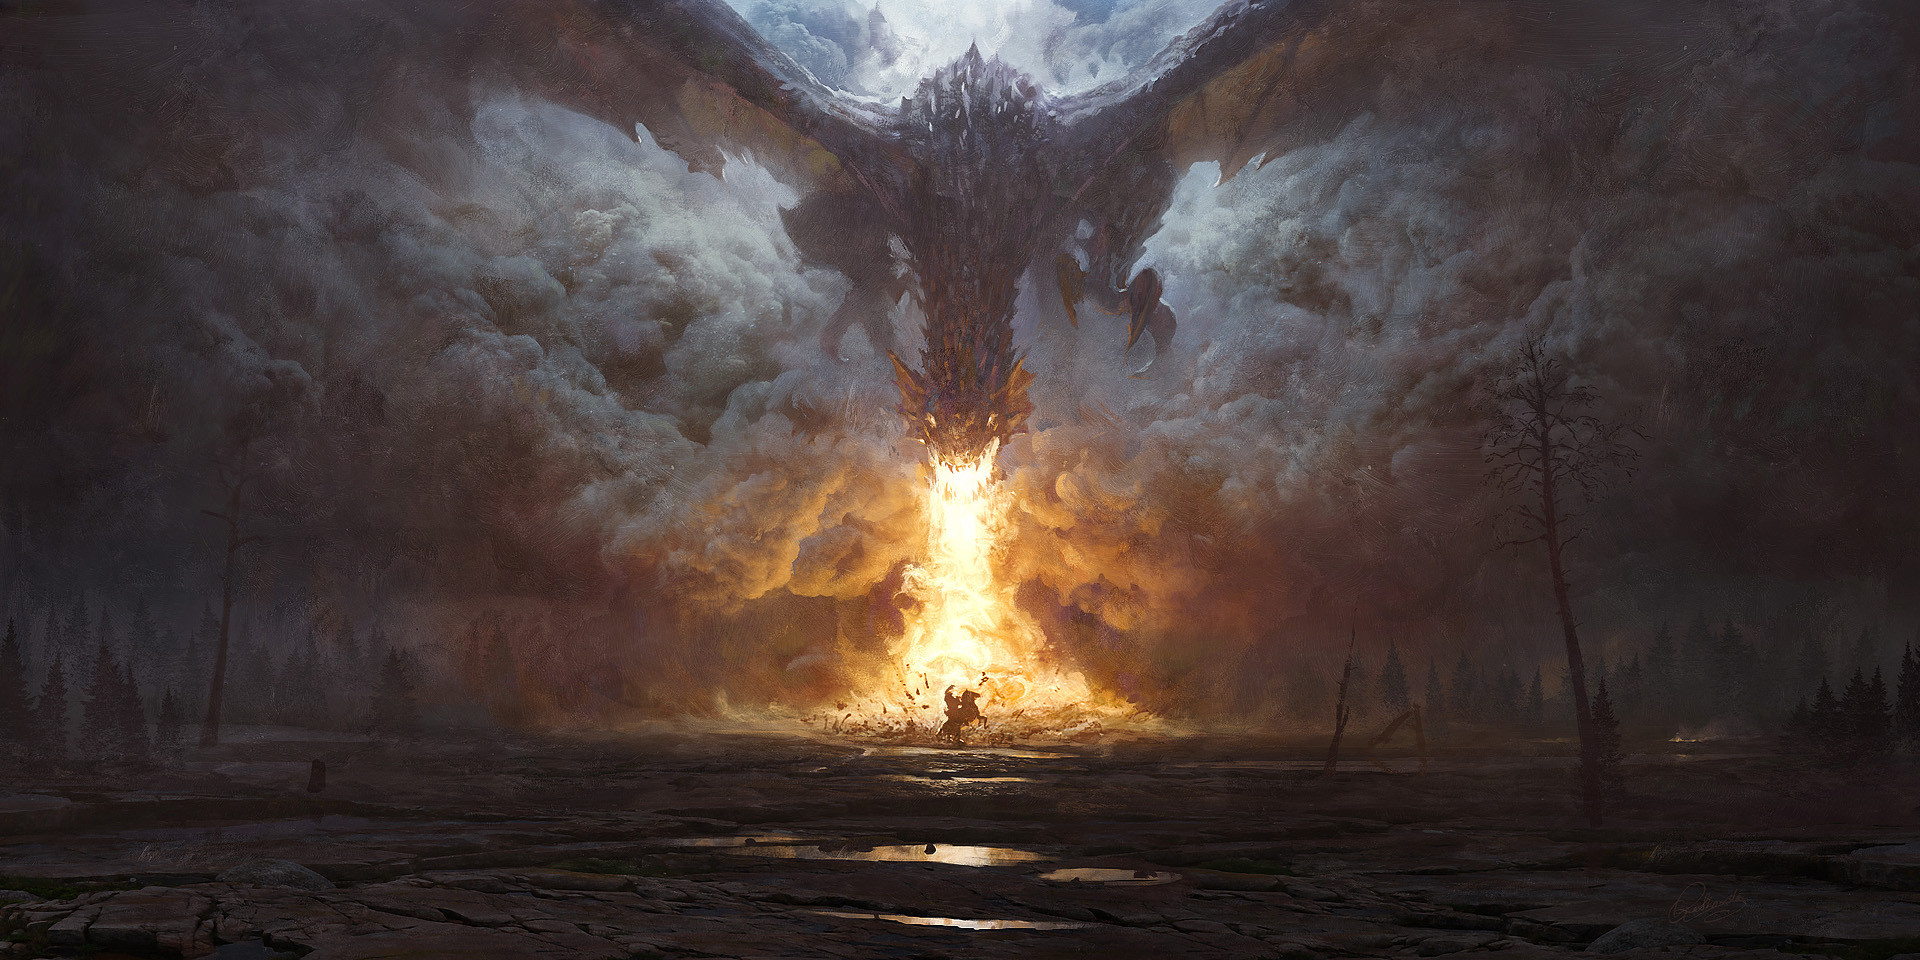 Grzegorz Rutkowski Digital Painting Illustration Dragon'Breath